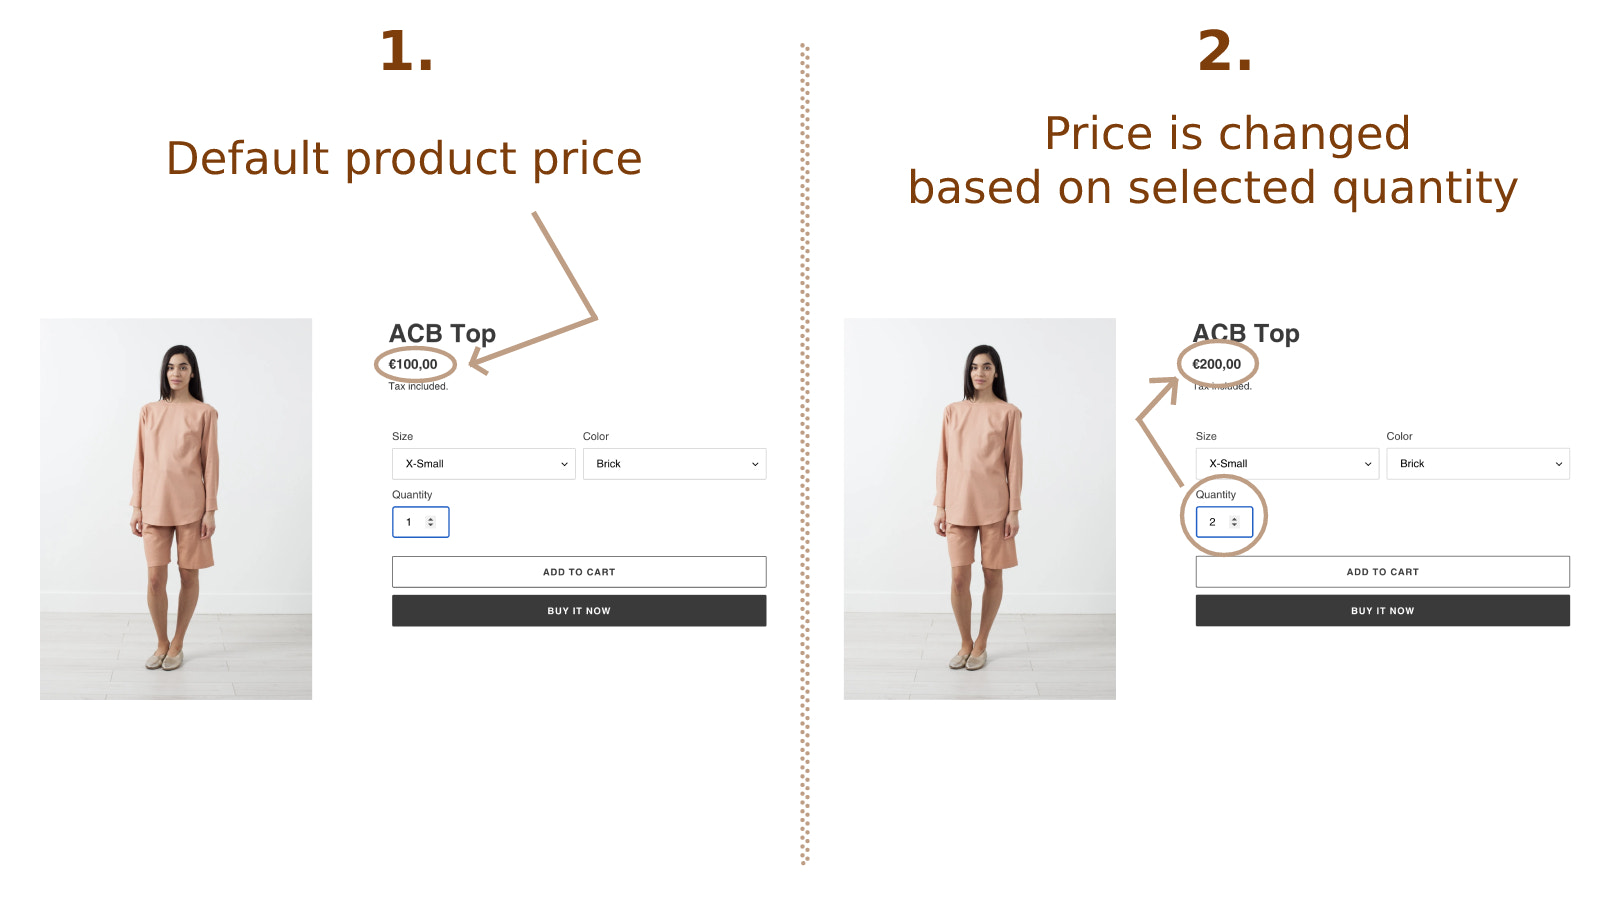 Price is changed based on selected quantity in product detail